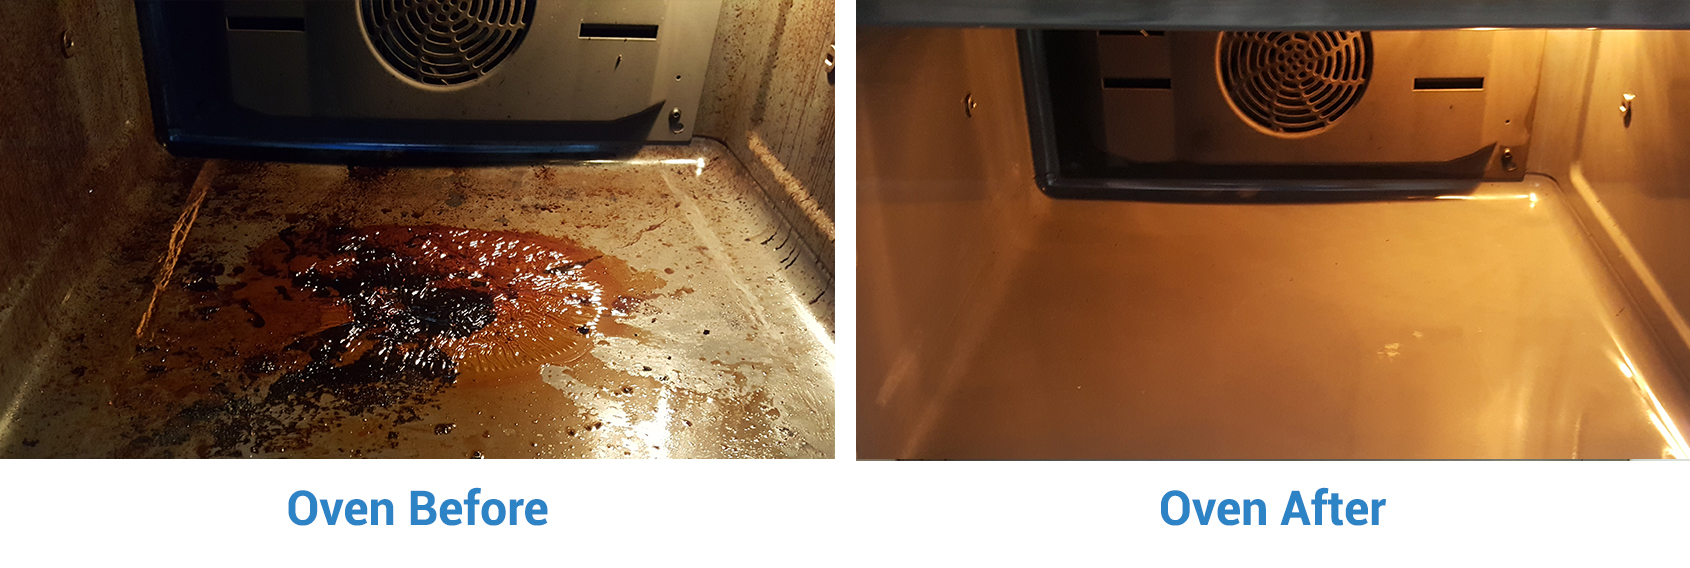 Cleanmate Oven cleaning